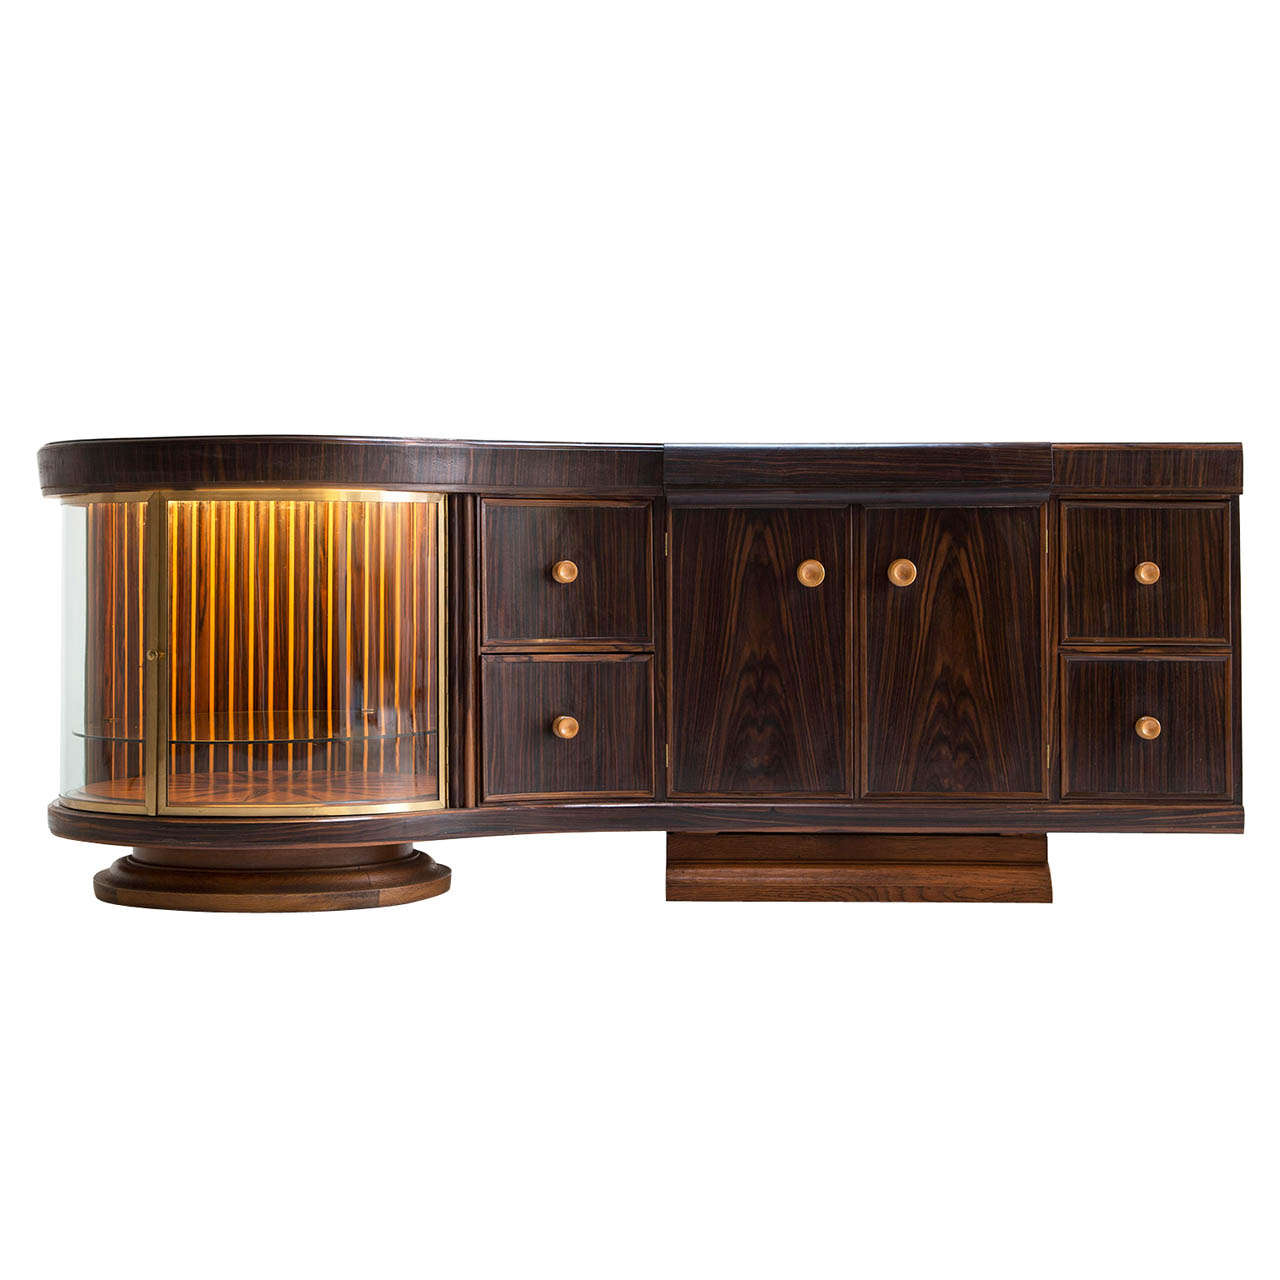 Illuminated art deco dry bar in rosewood for sale at 1stdibs for Home dry bar furniture